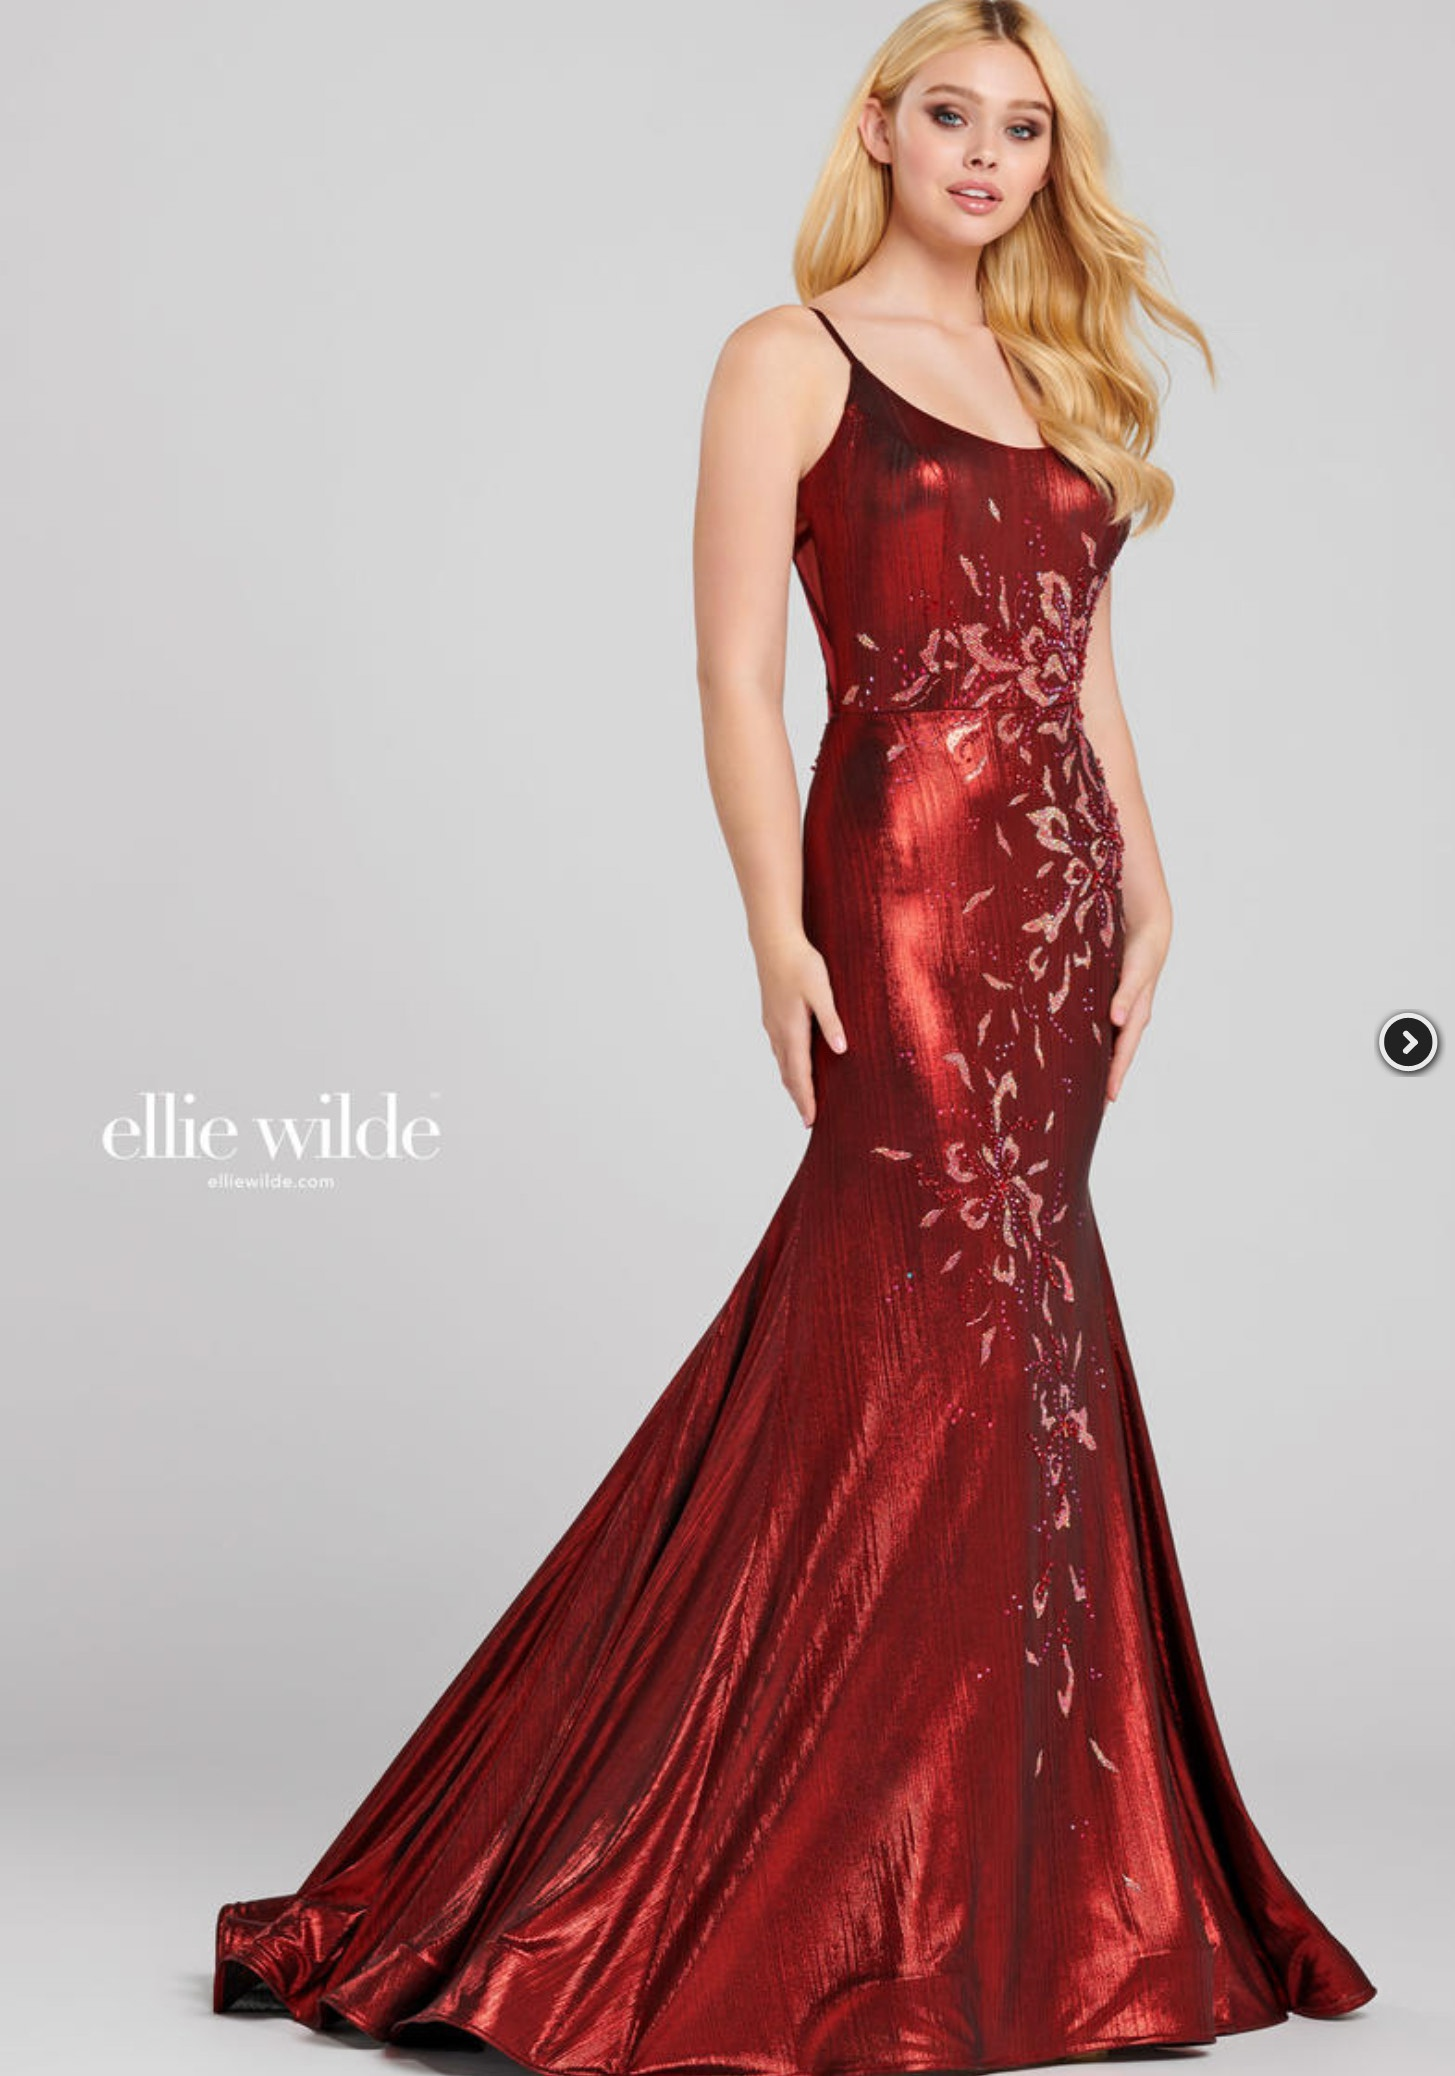 Ellie Wilde Red Size 0 Prom Mini Train Mermaid Dress on Queenly